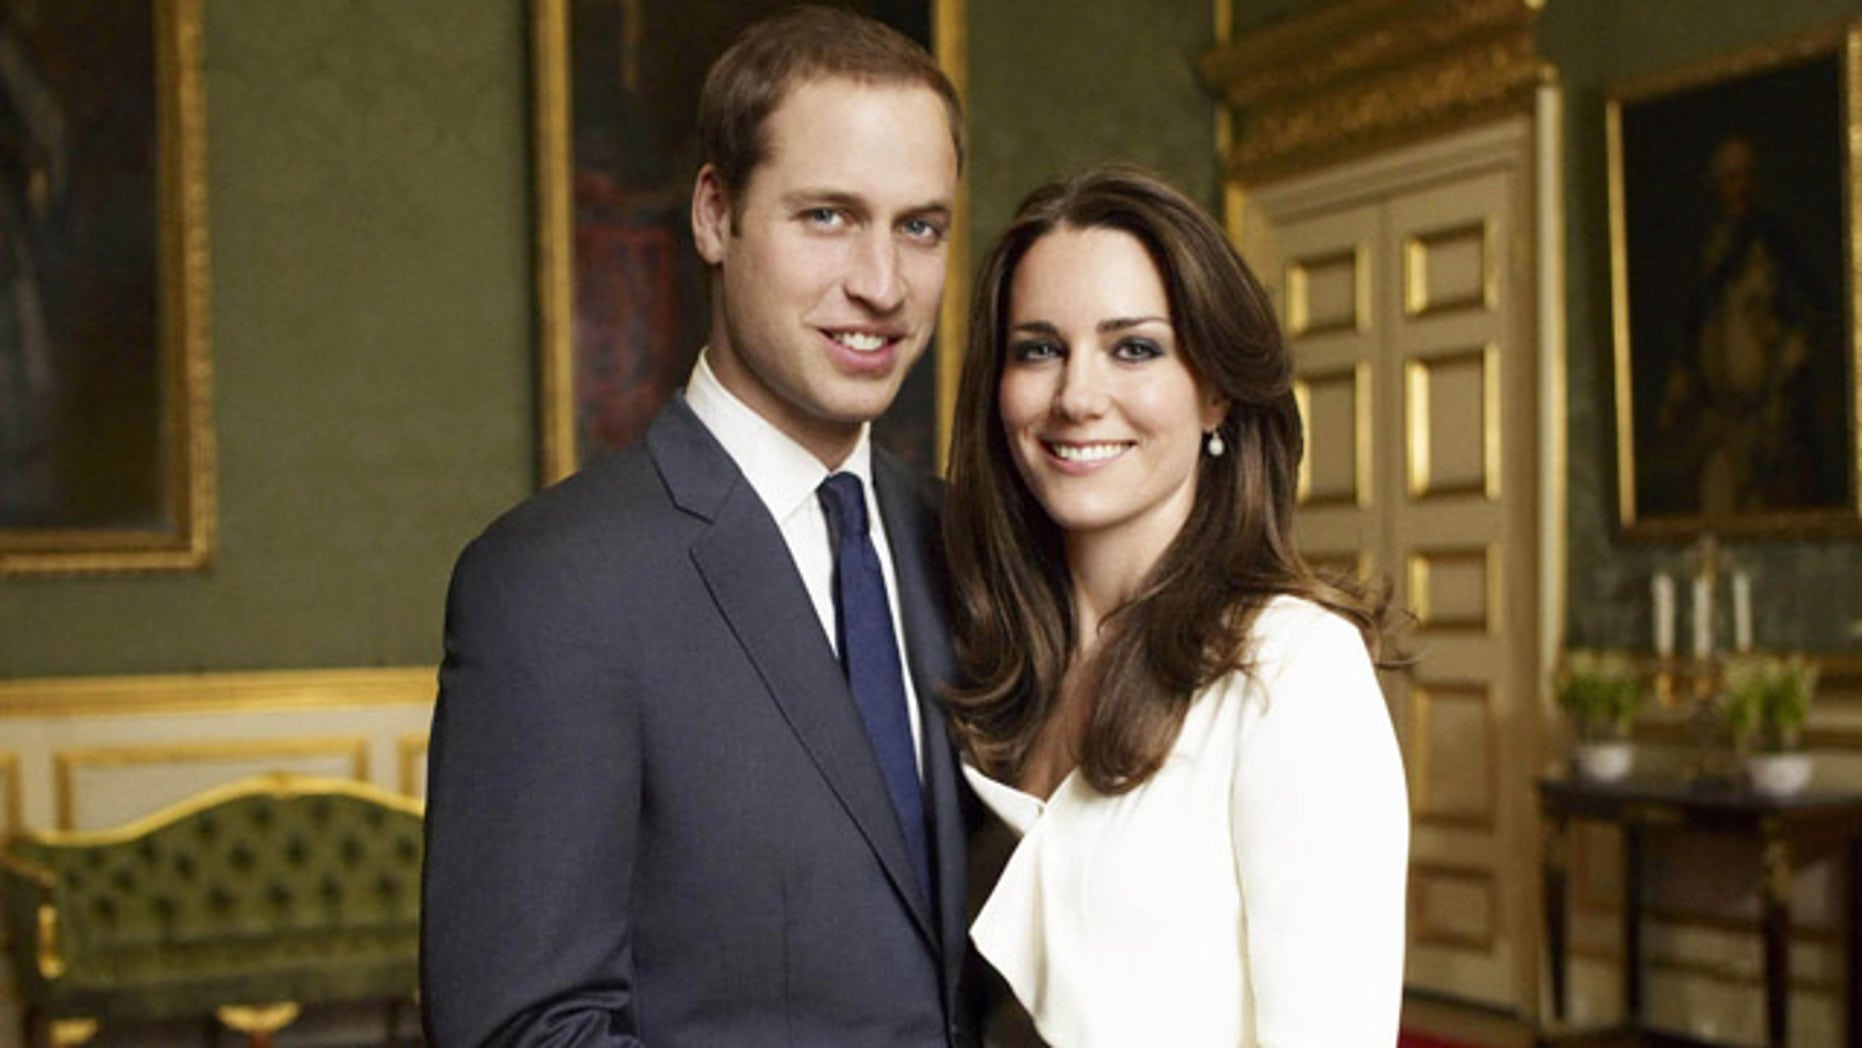 This is one of two official portrait photographs taken on Nov. 25, 2010 in the Council Chamber in the State Apartment in St James Palace, London and released by Clarence House Press Office on Sunday Dec. 12, 2010 to mark the engagement of Britain's Prince William and Catherine Middleton.